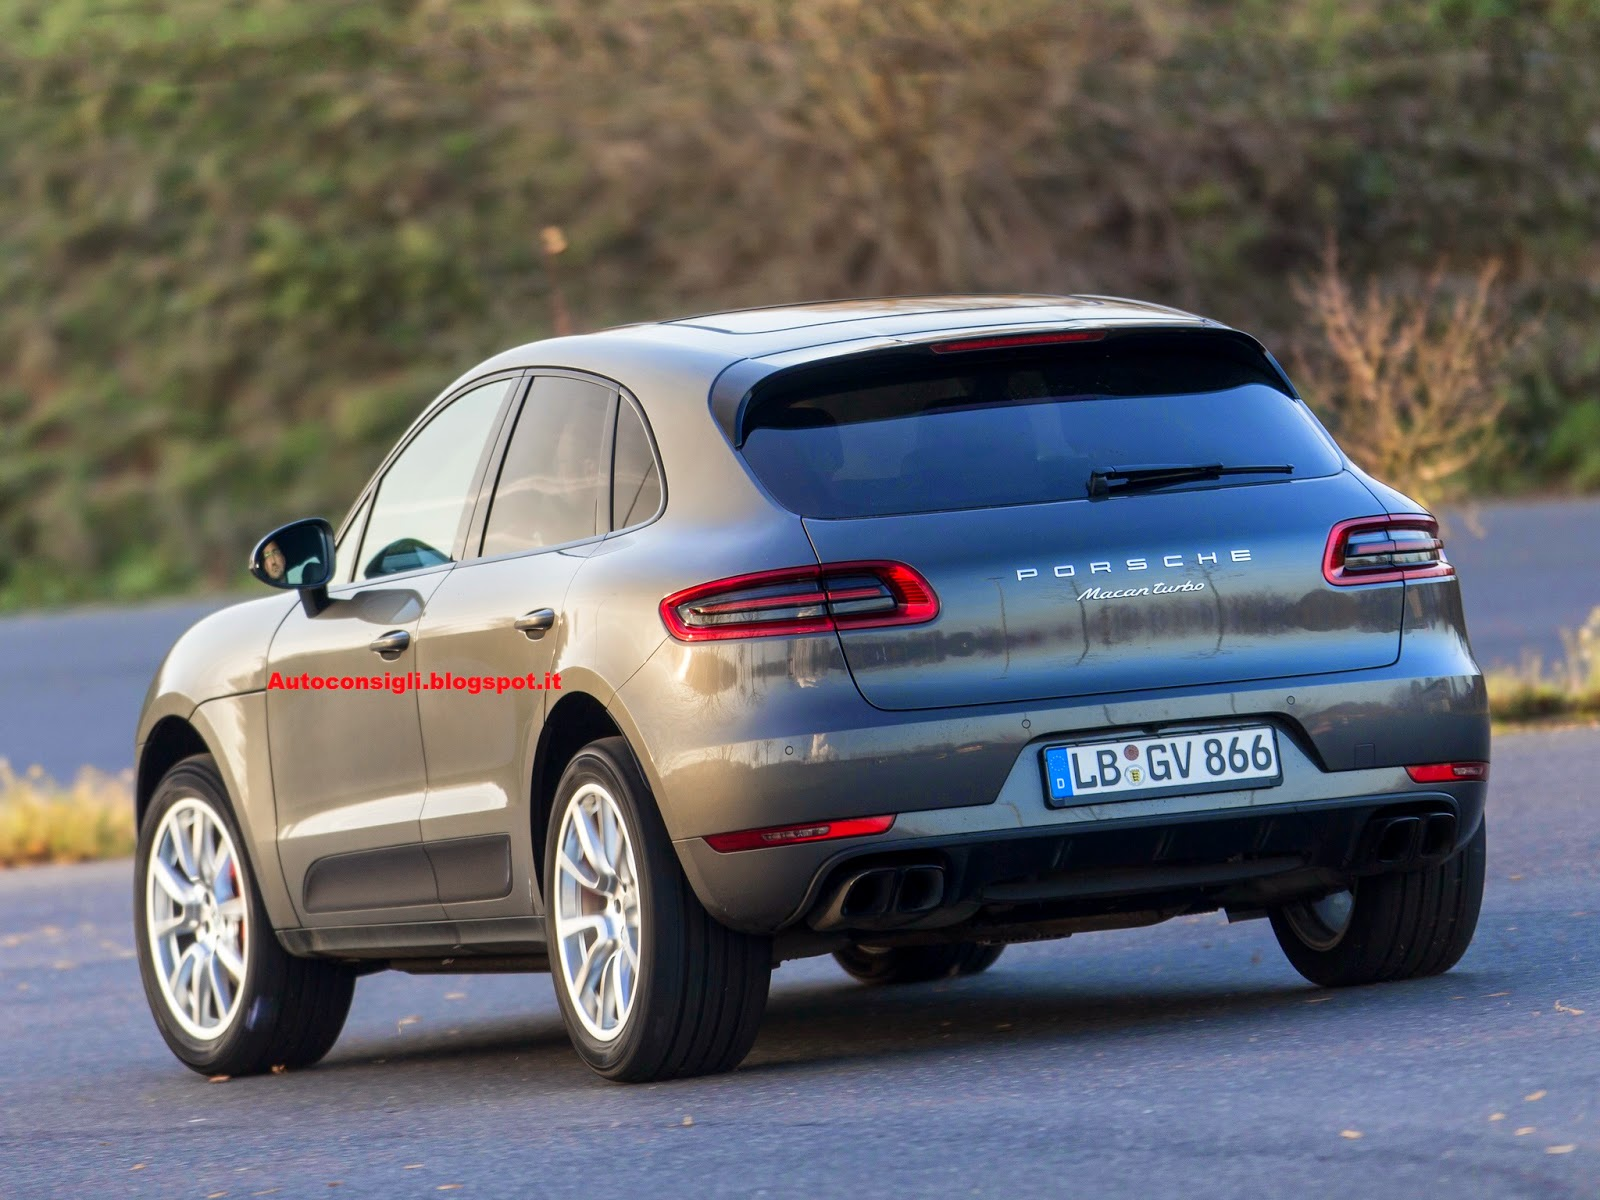 car al top 33 porsche macan sfida sul mercato la glk x3 e q5. Black Bedroom Furniture Sets. Home Design Ideas